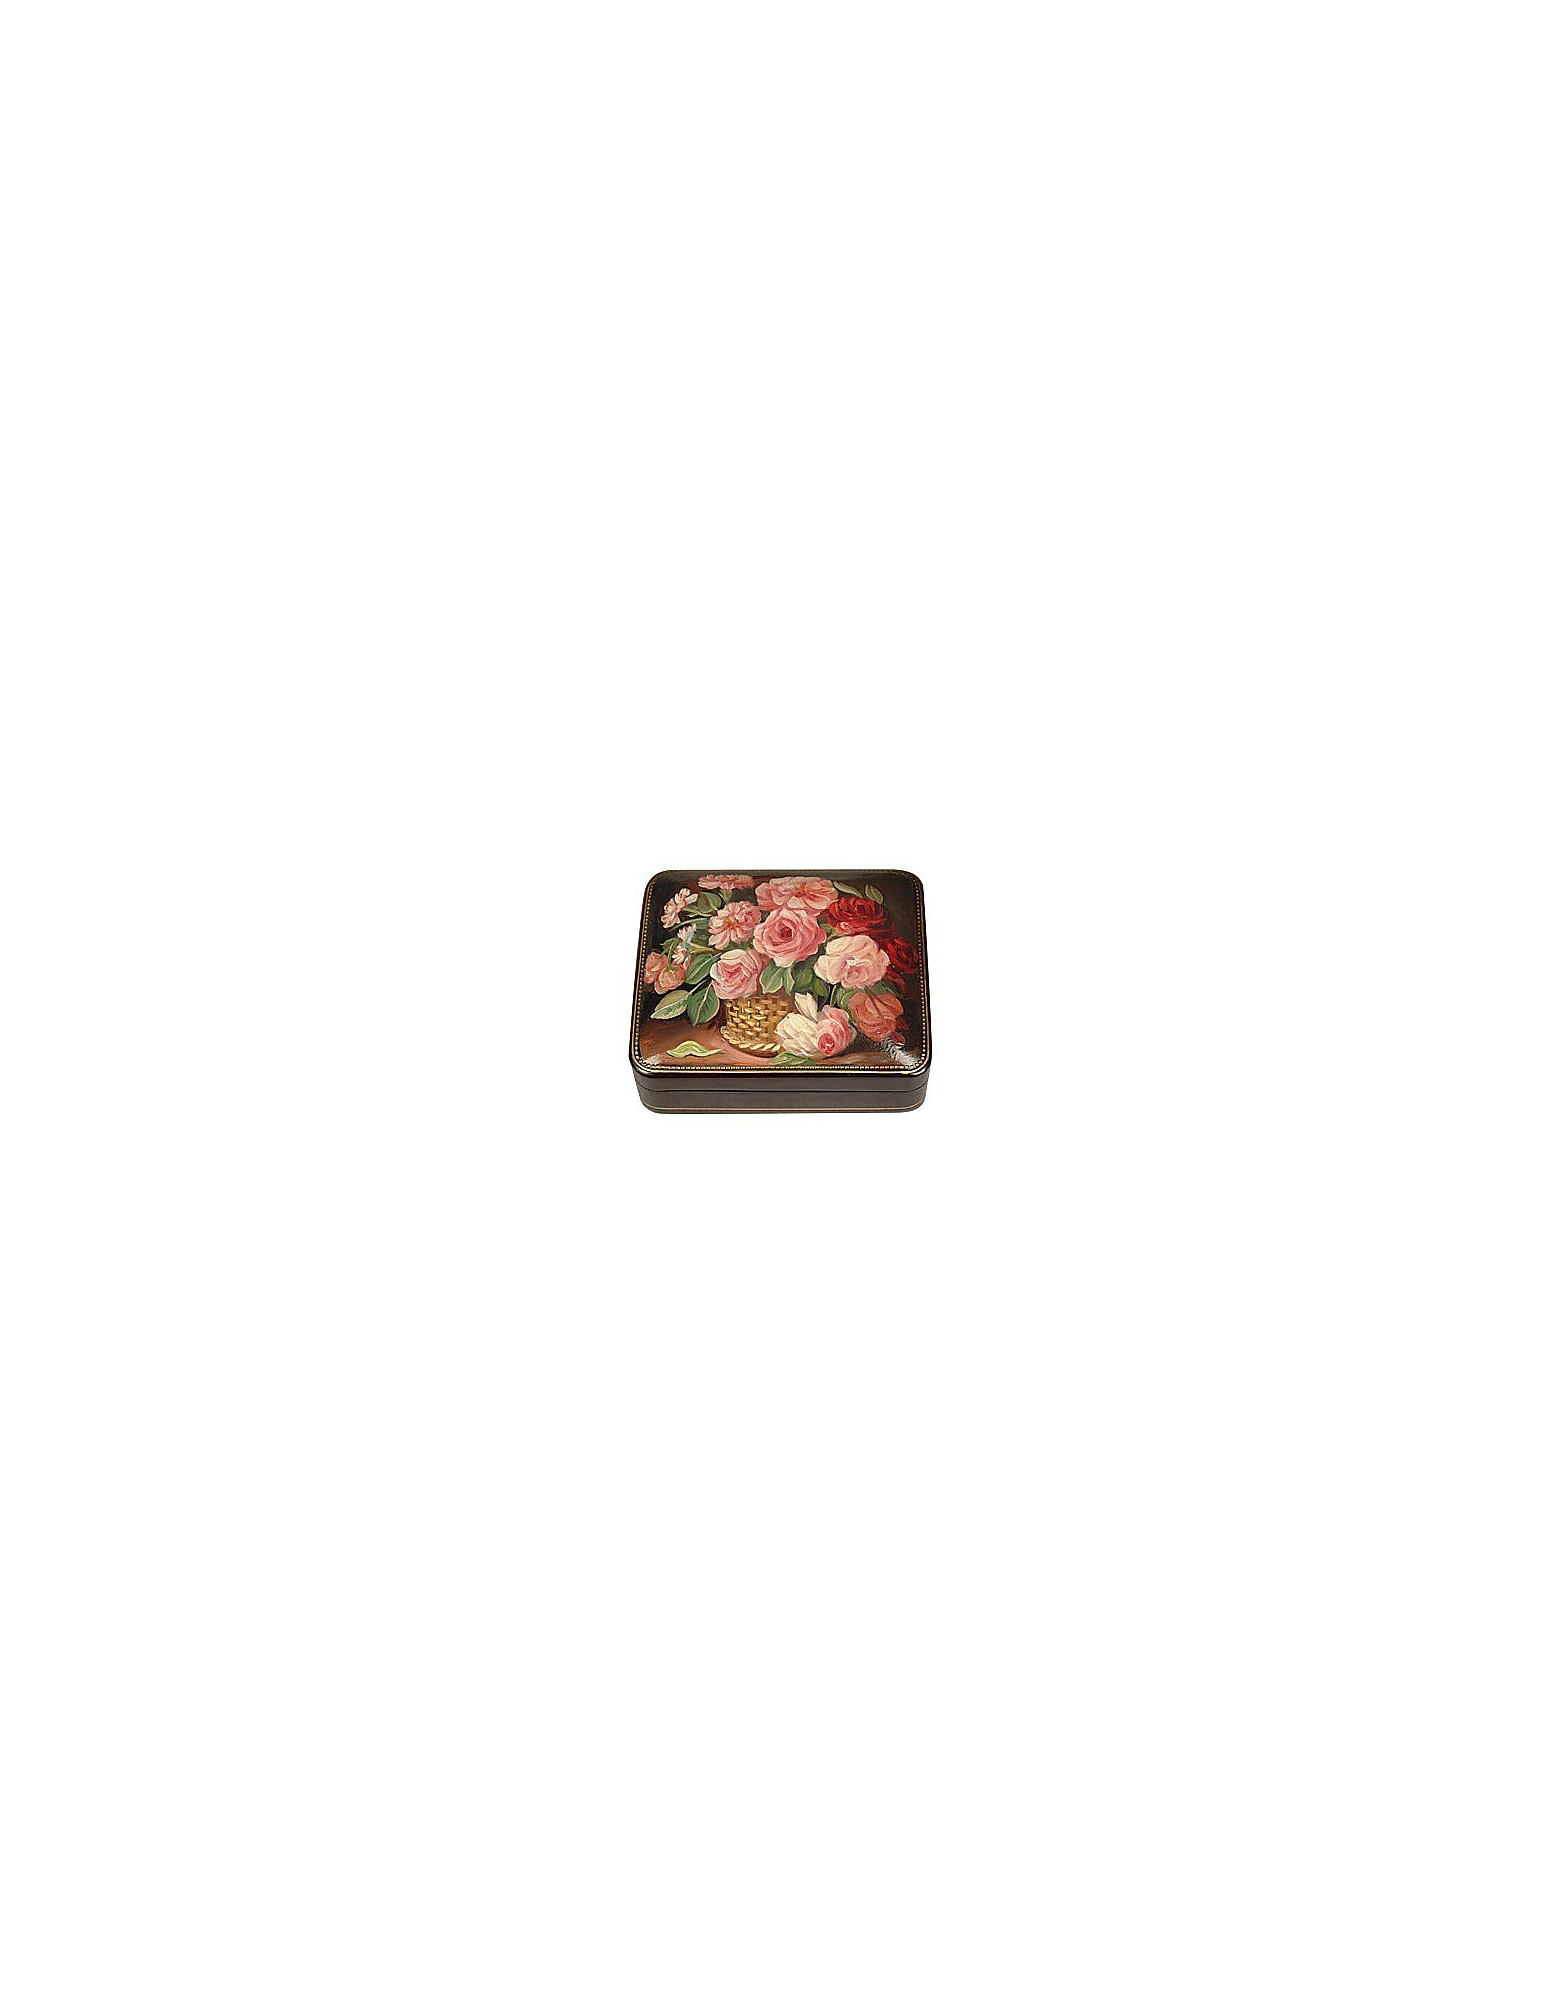 Bianchi Arte Jewelry Boxes, Flower Bouquet - Oil on Leather Jewelry Box